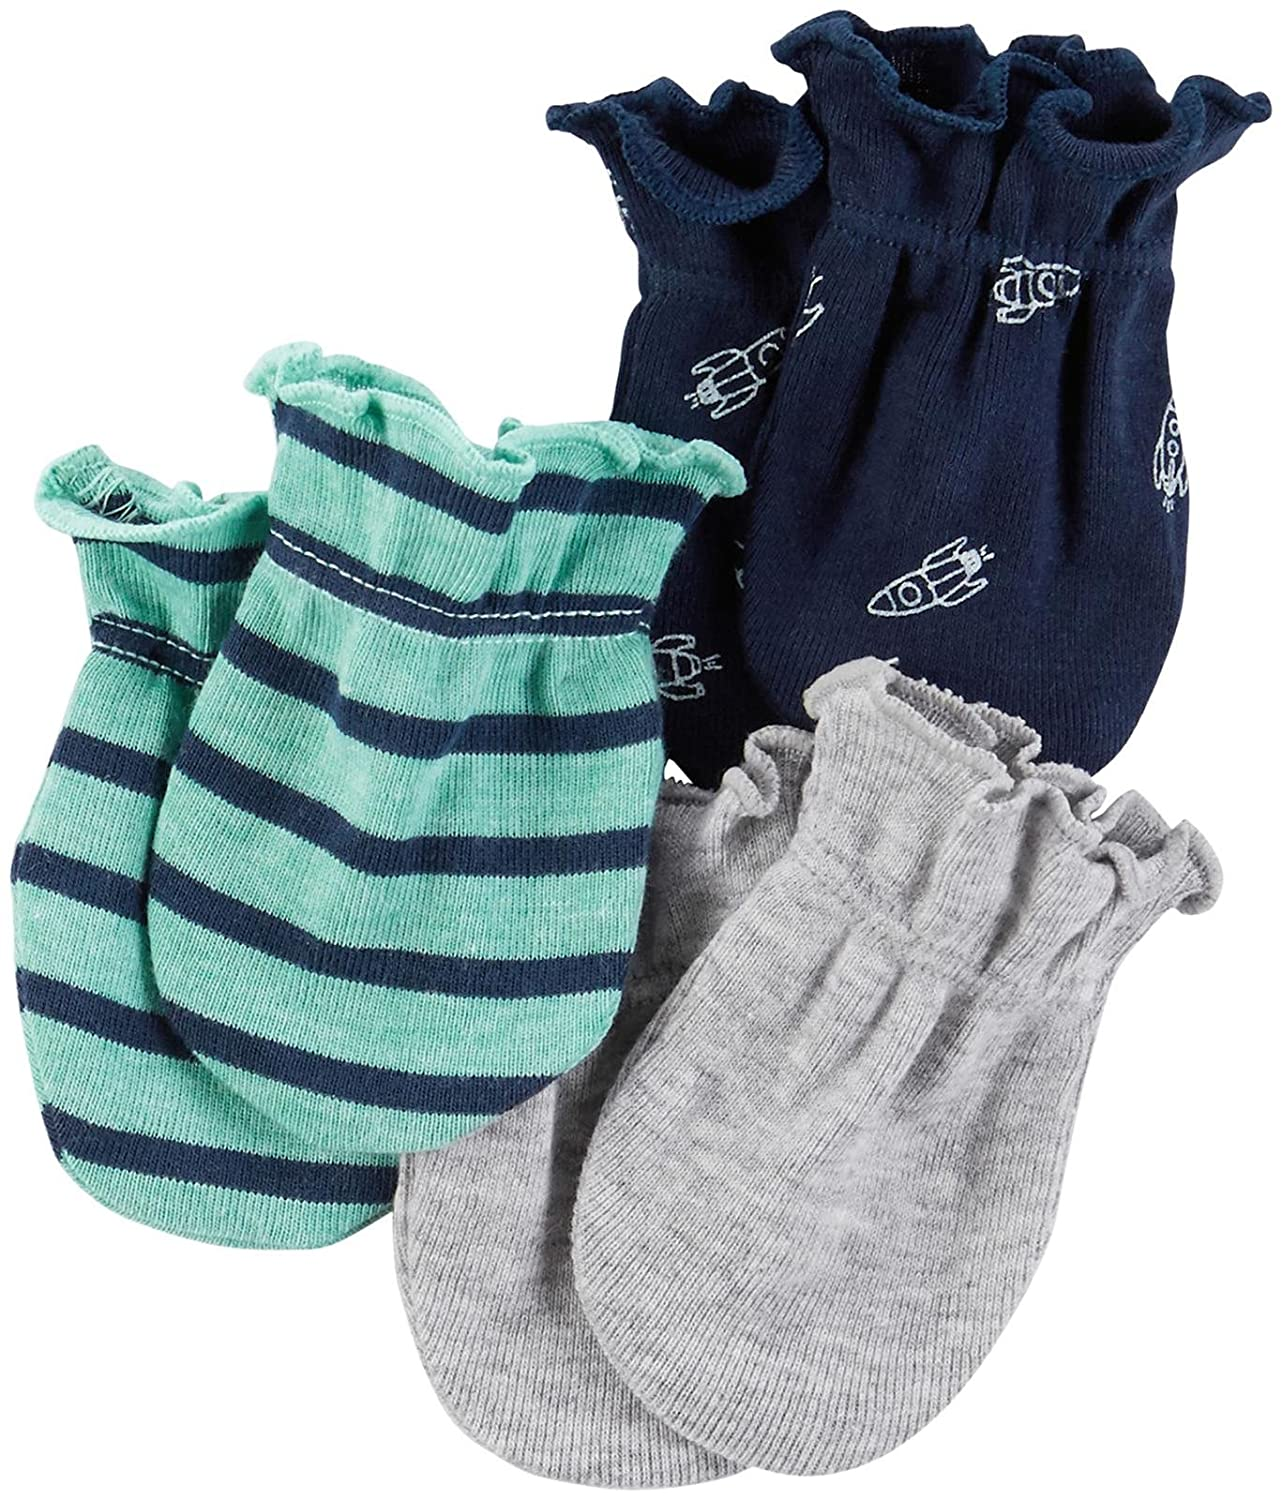 Carter\'s Baby Boys Mitts 126g555 Navy 0-3 Months Baby Carters